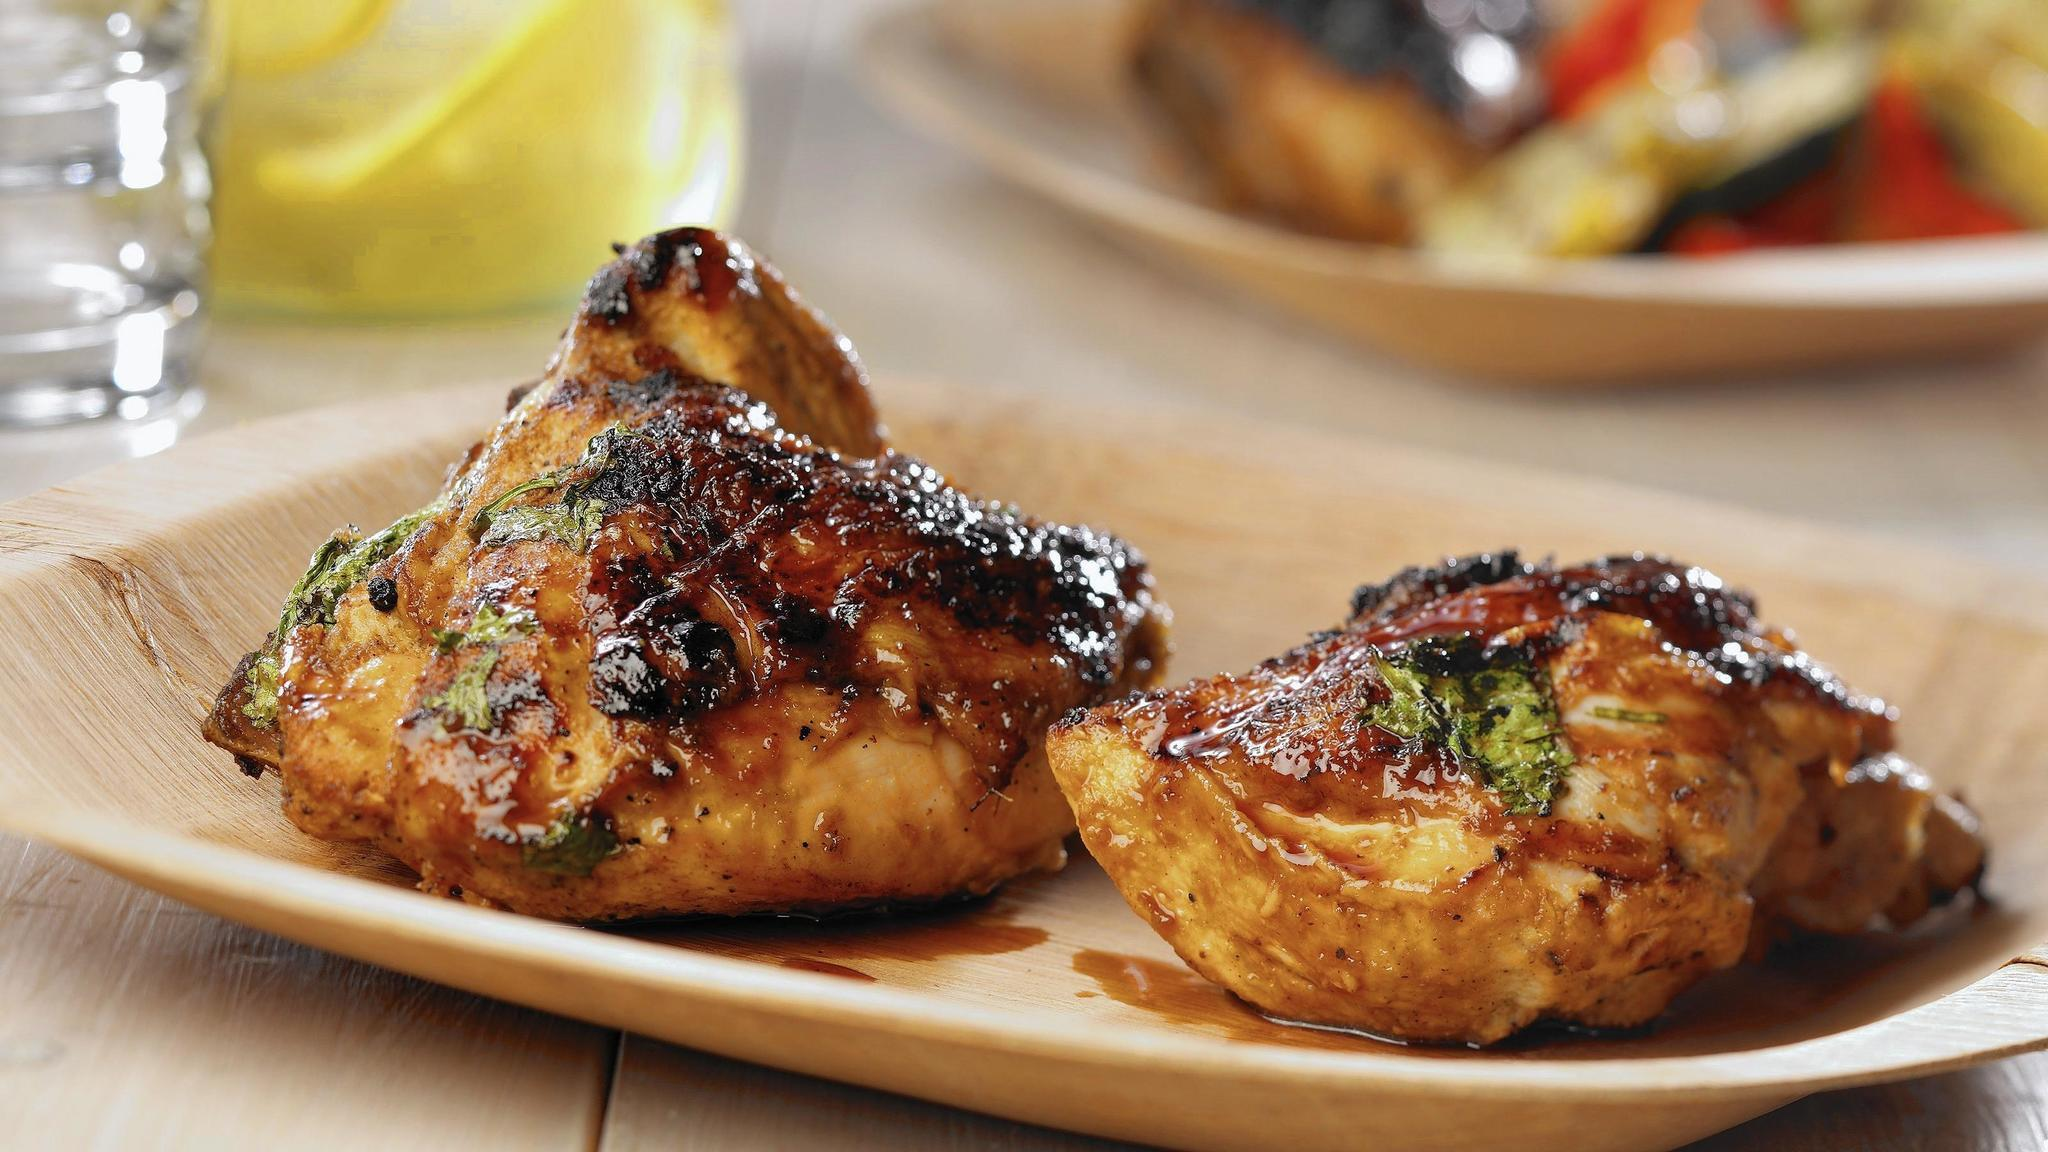 Coconut milk marinade helps grilled chicken rise to occasion